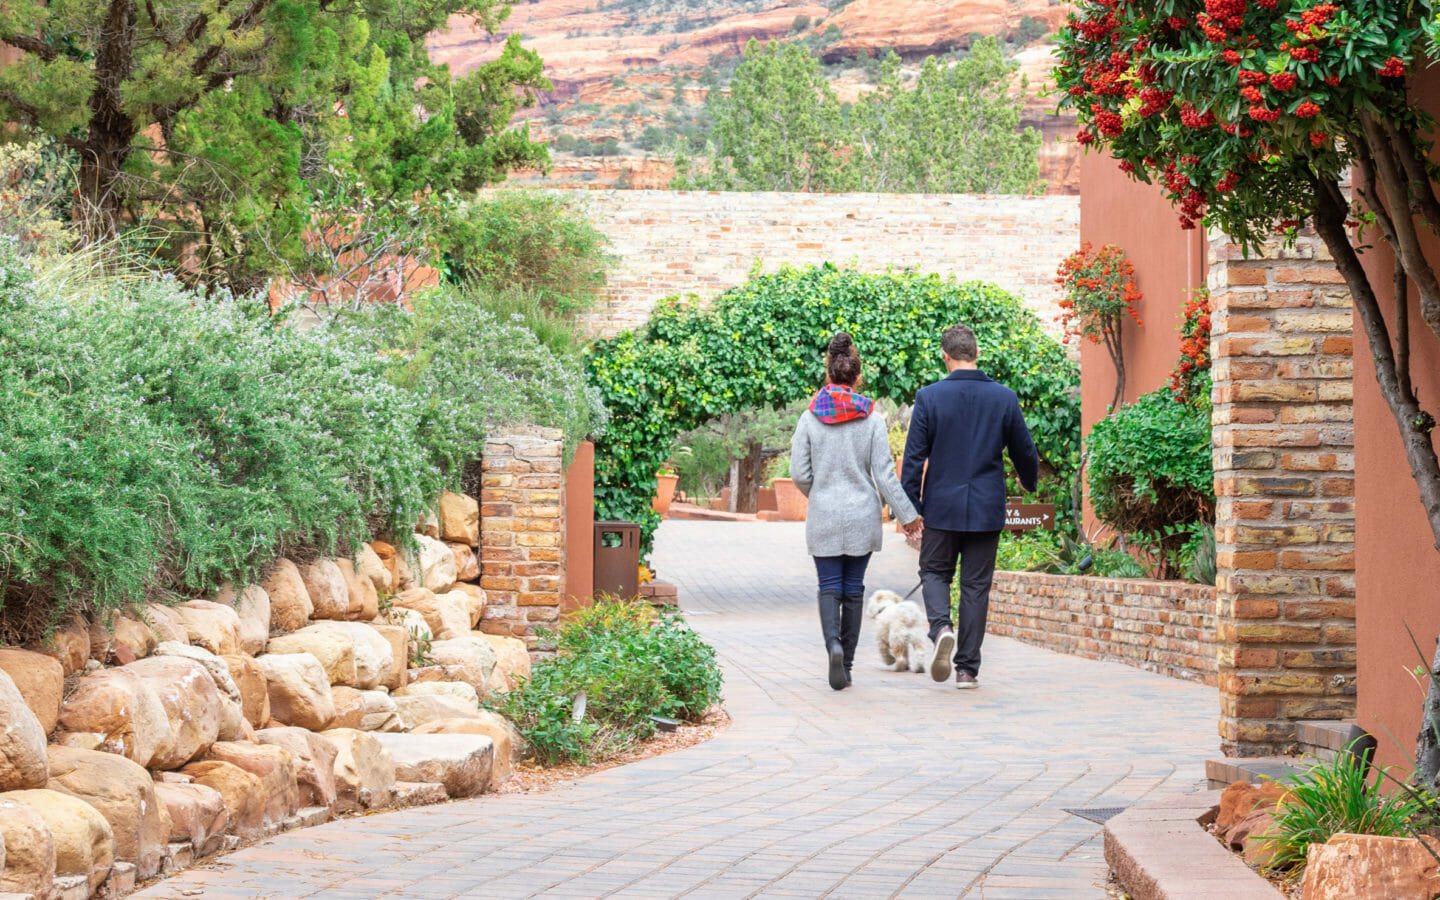 Pet Friendly Resort in Sedona